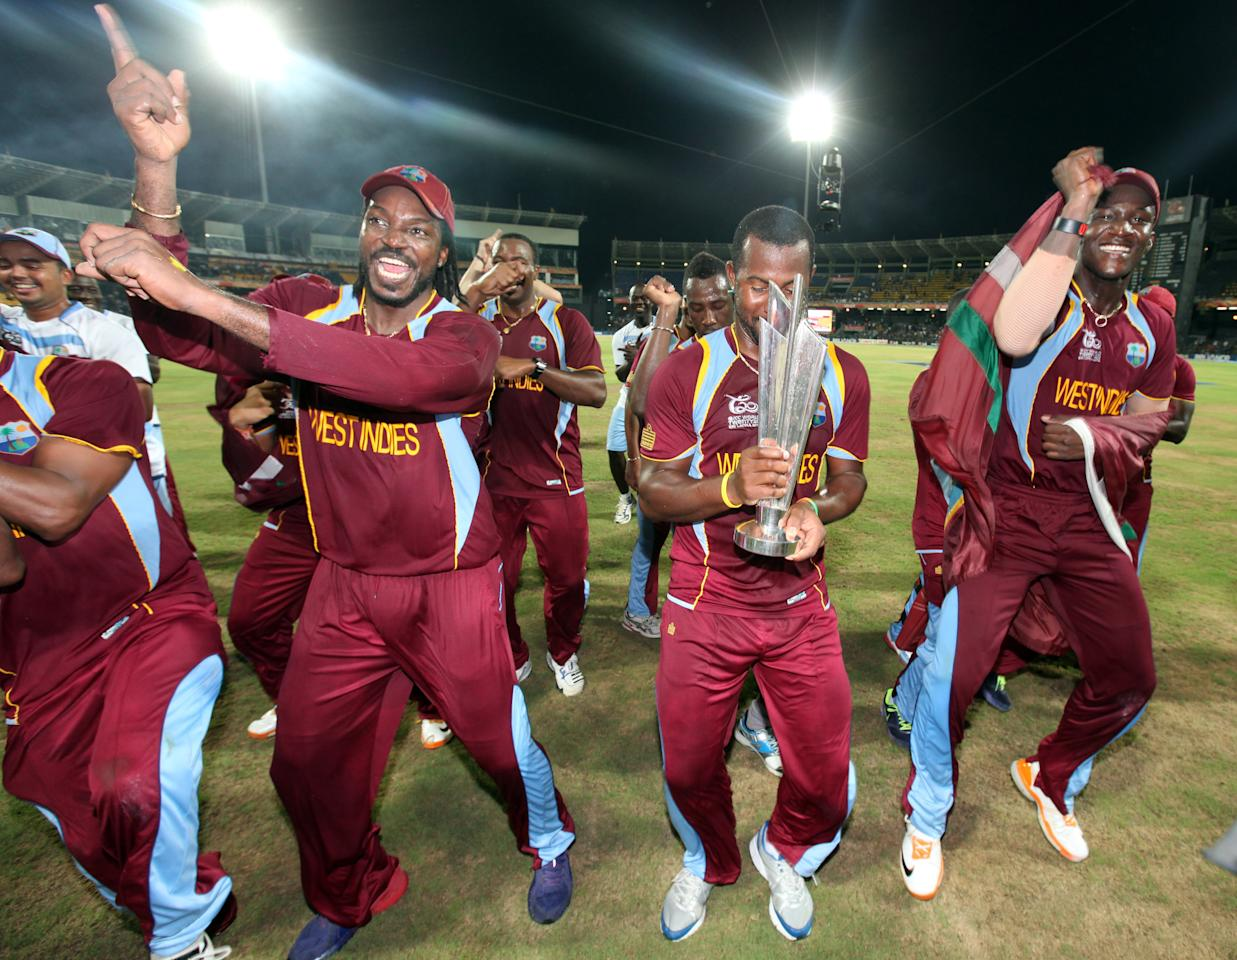 COLOMBO ,SRI LANKA - OCTOBER 7:  Chris Gayle, Johnson Charles and Darren Sammy of  West Indies celebrate after defeating Sri Lanka in the ICC  World Twenty20 2012 Final between Sri Lanka and West Indies at R. Premadasa Stadium on October 7, 2012 in Colombo, Sri Lanka.(Photo by Graham Crouch-ICC/ICC via Getty Images)